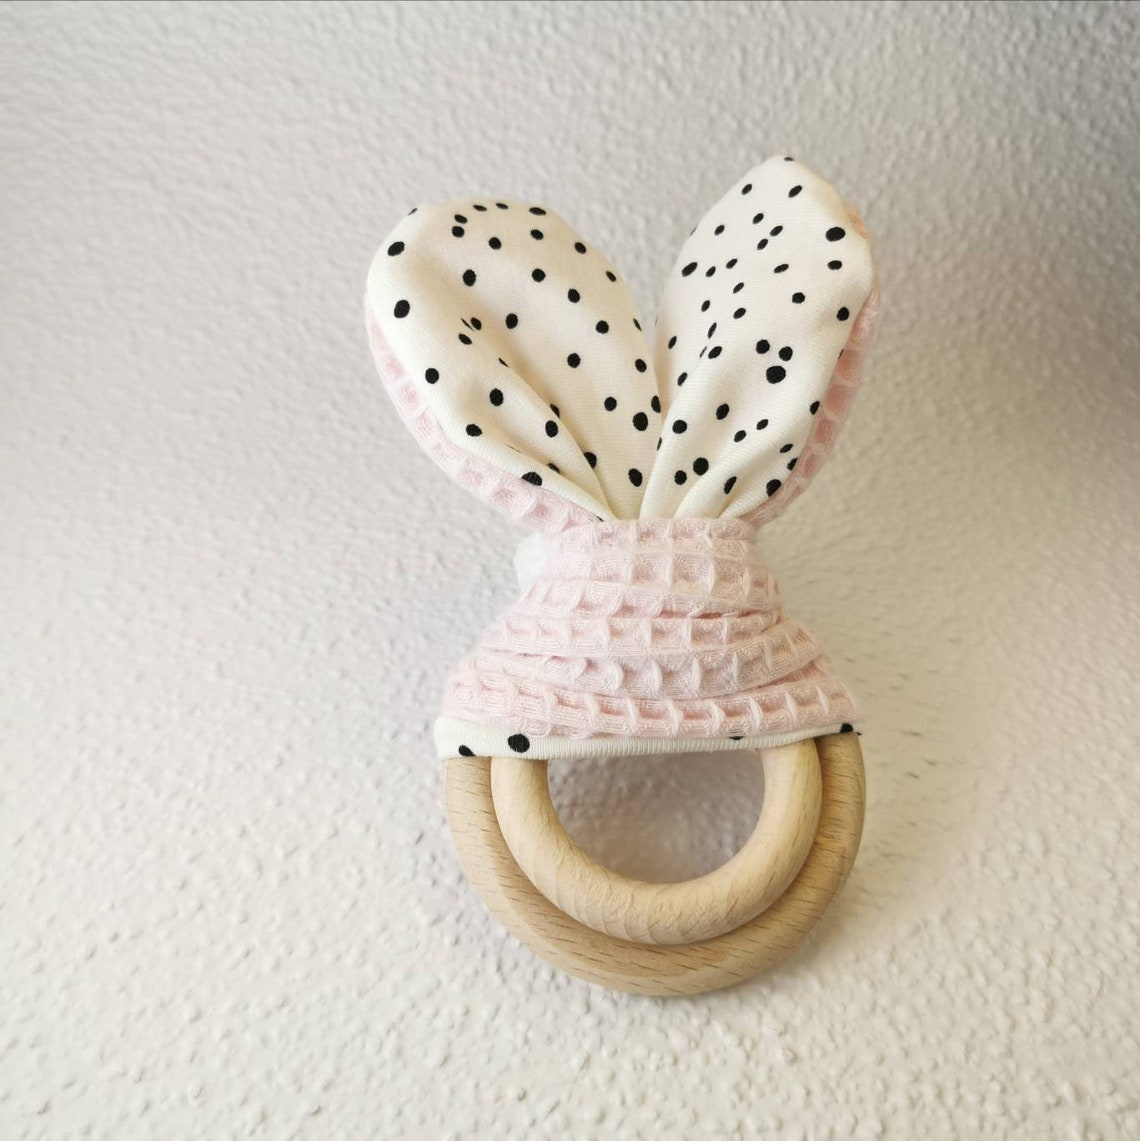 Bunny ears biting ring with crackling foil crackling ears